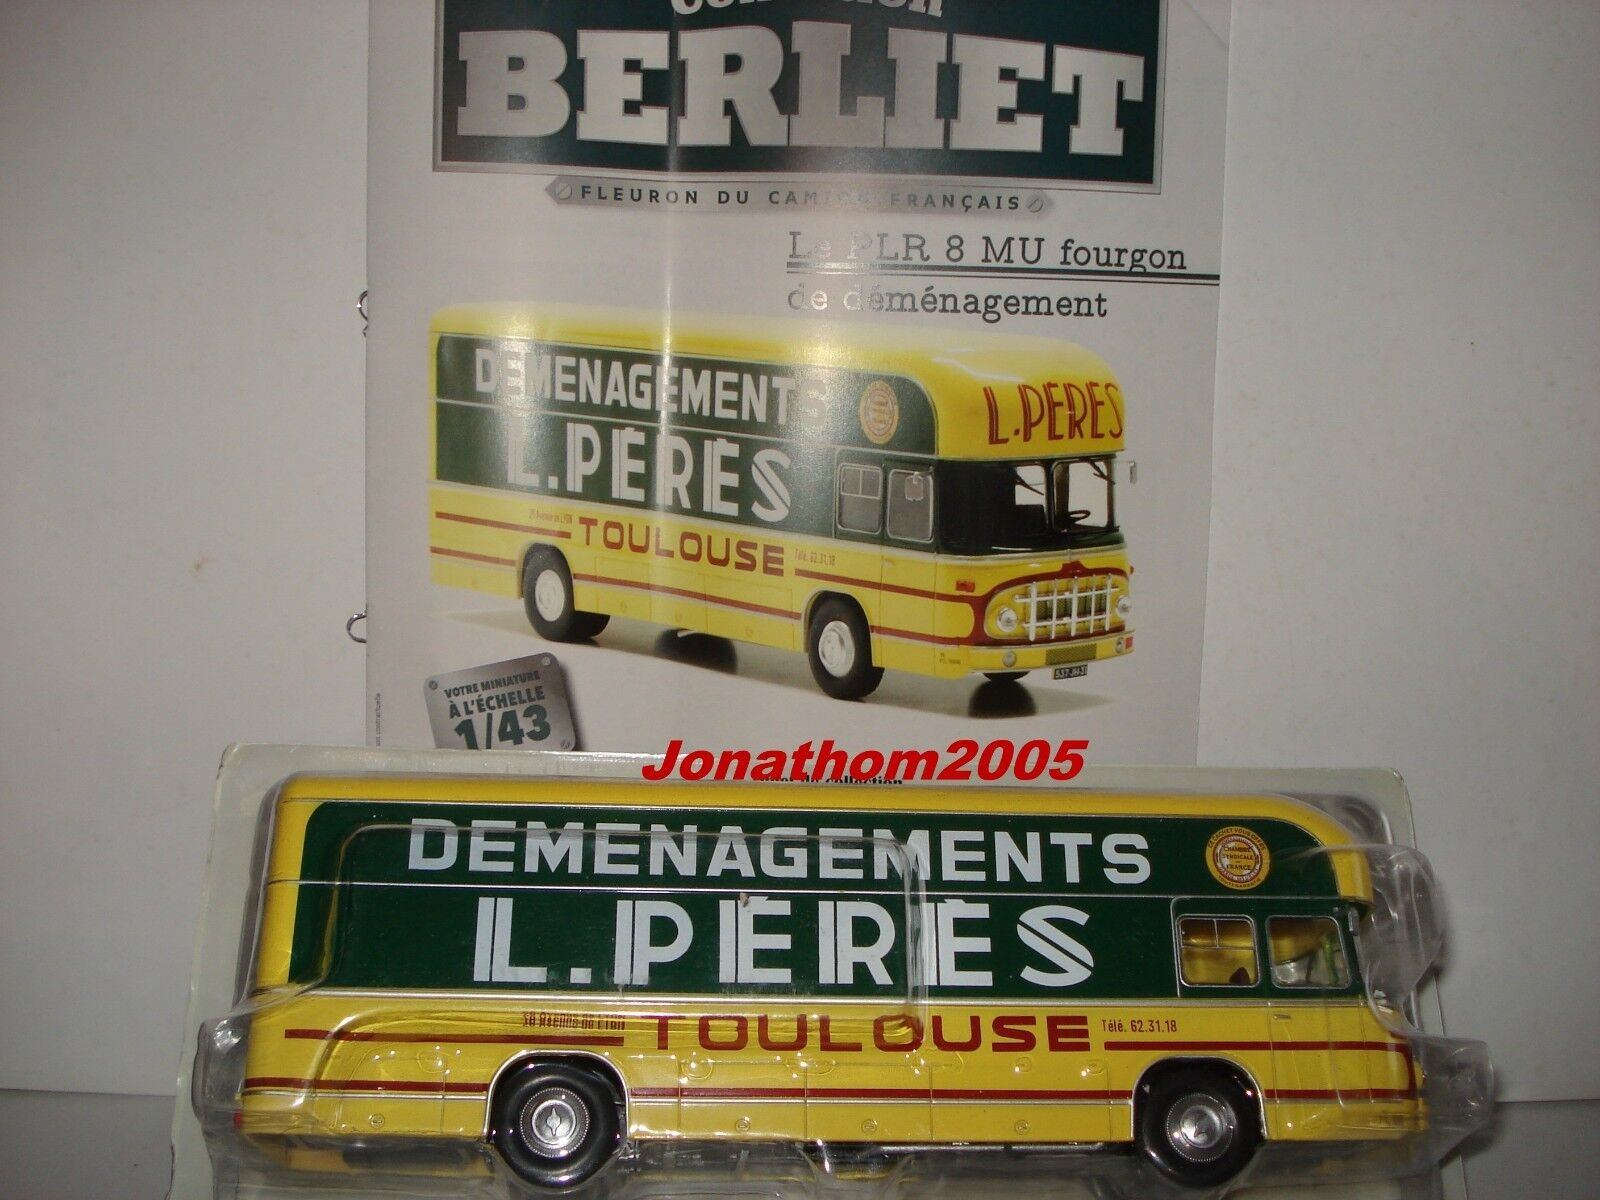 COLLECTION BERLIET - PLR 8 MU VAN   WAGON REMOVALS FATHERS TOULOUSE to the 1 43°